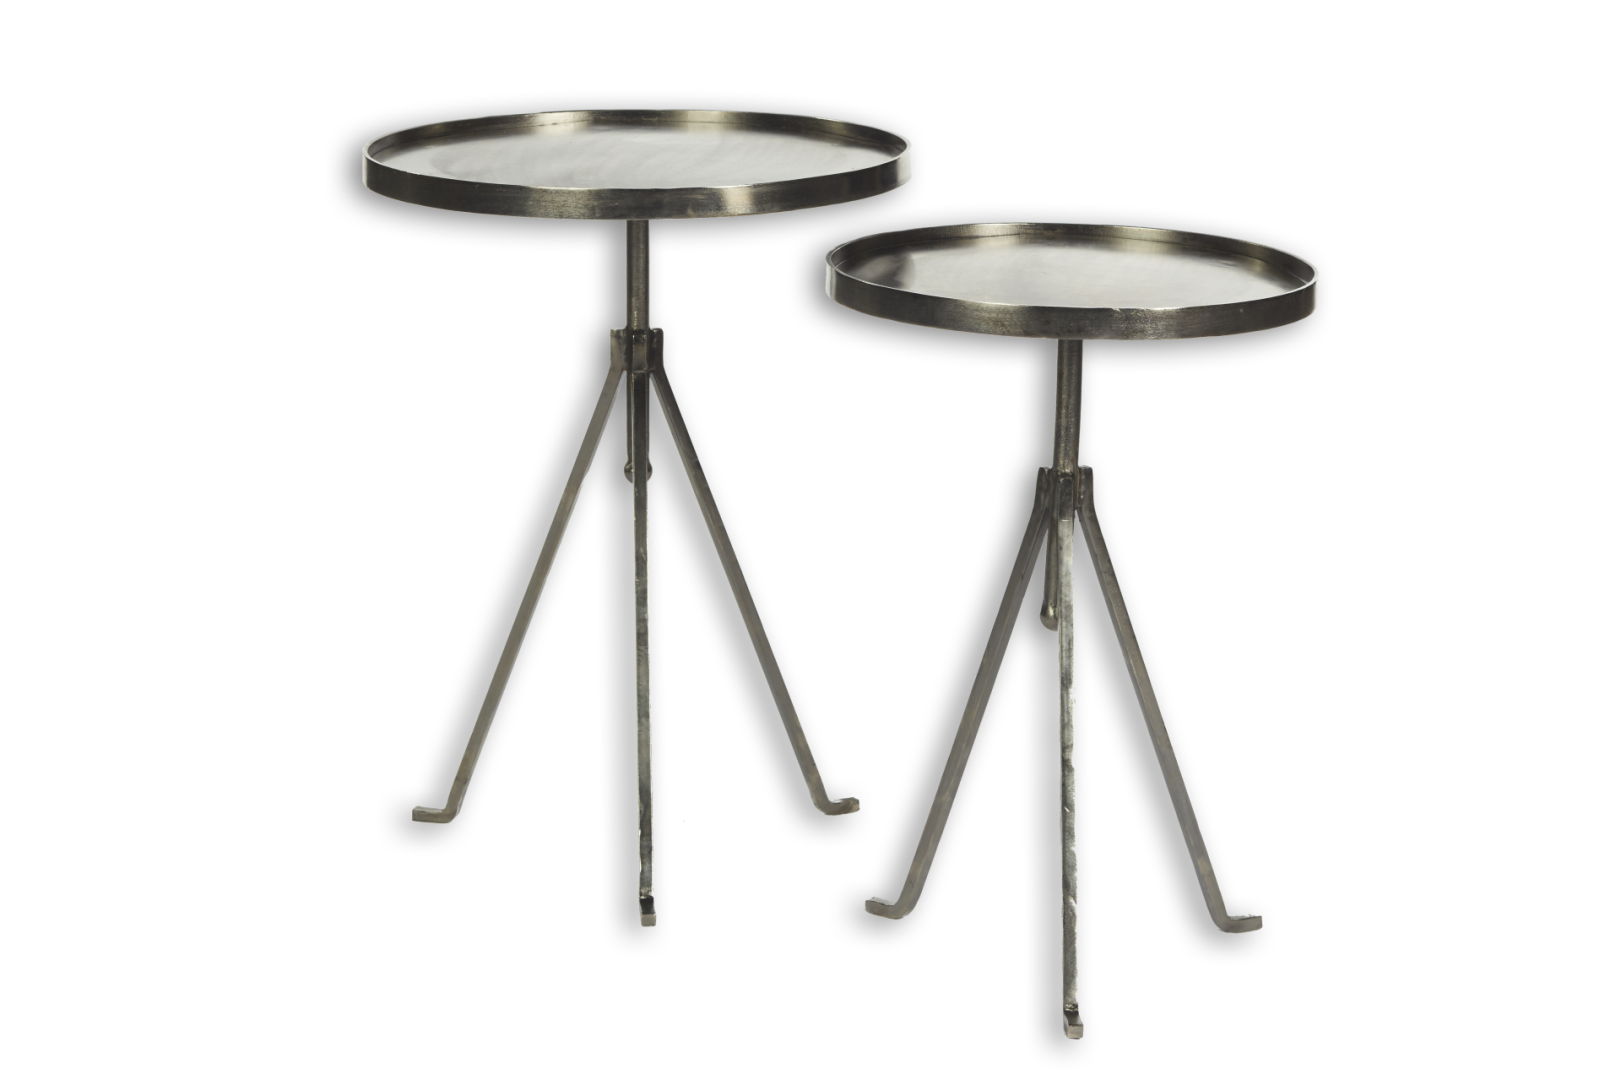 pair black accent tables perch decor drum table cooler coffee wicker garden and chairs inch round lucite waterfall large chair hairpin legs mirror west elm marble white